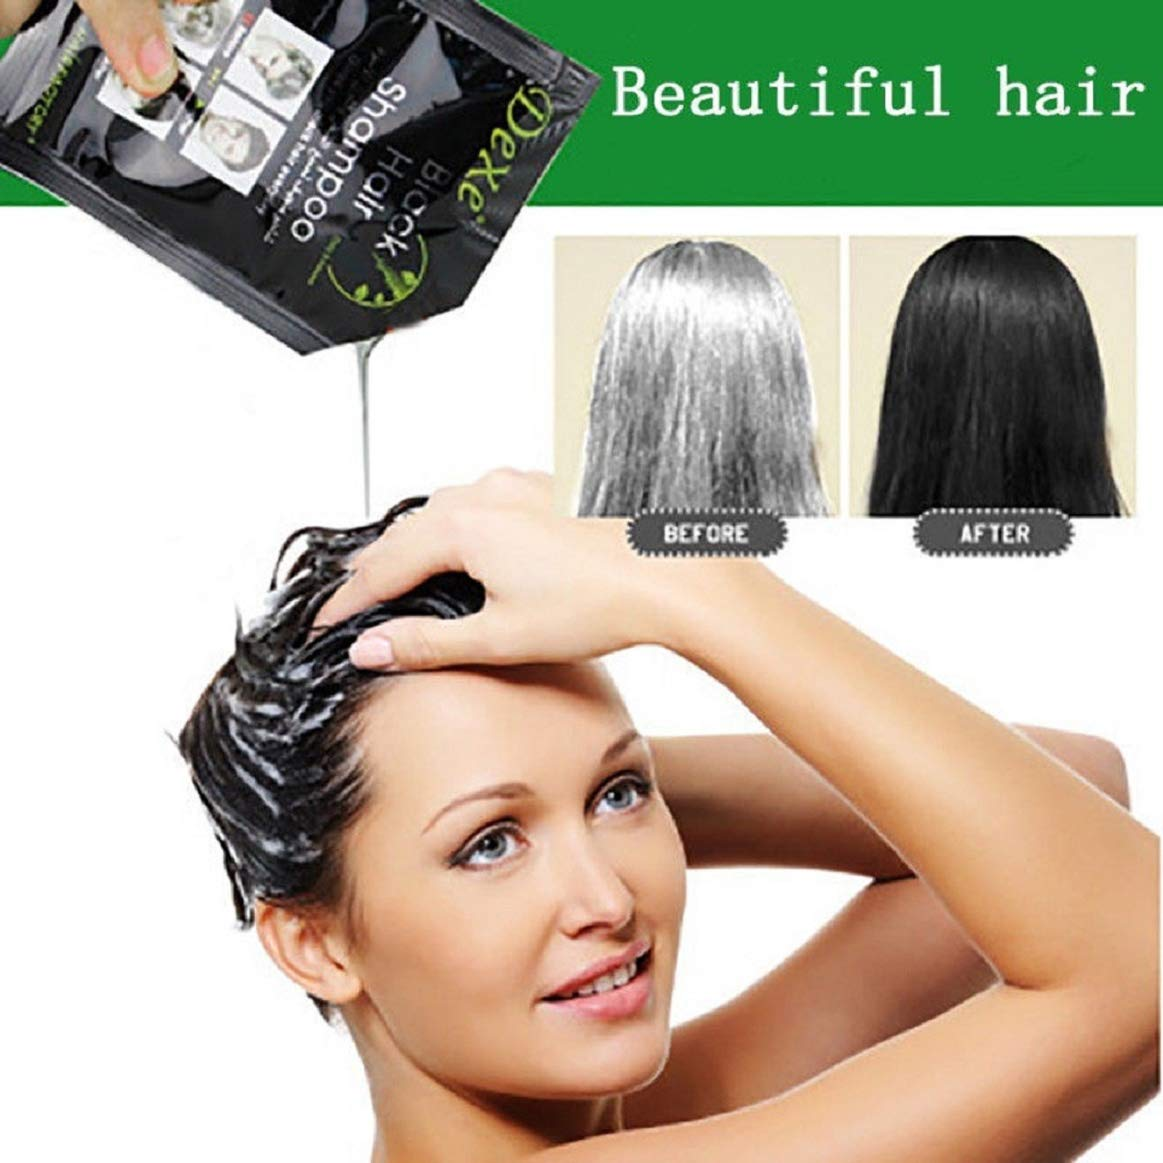 Hair Dye, 10PCS Black Hair Shampoo (Natural Black) White Hair into Black Instant Coerni